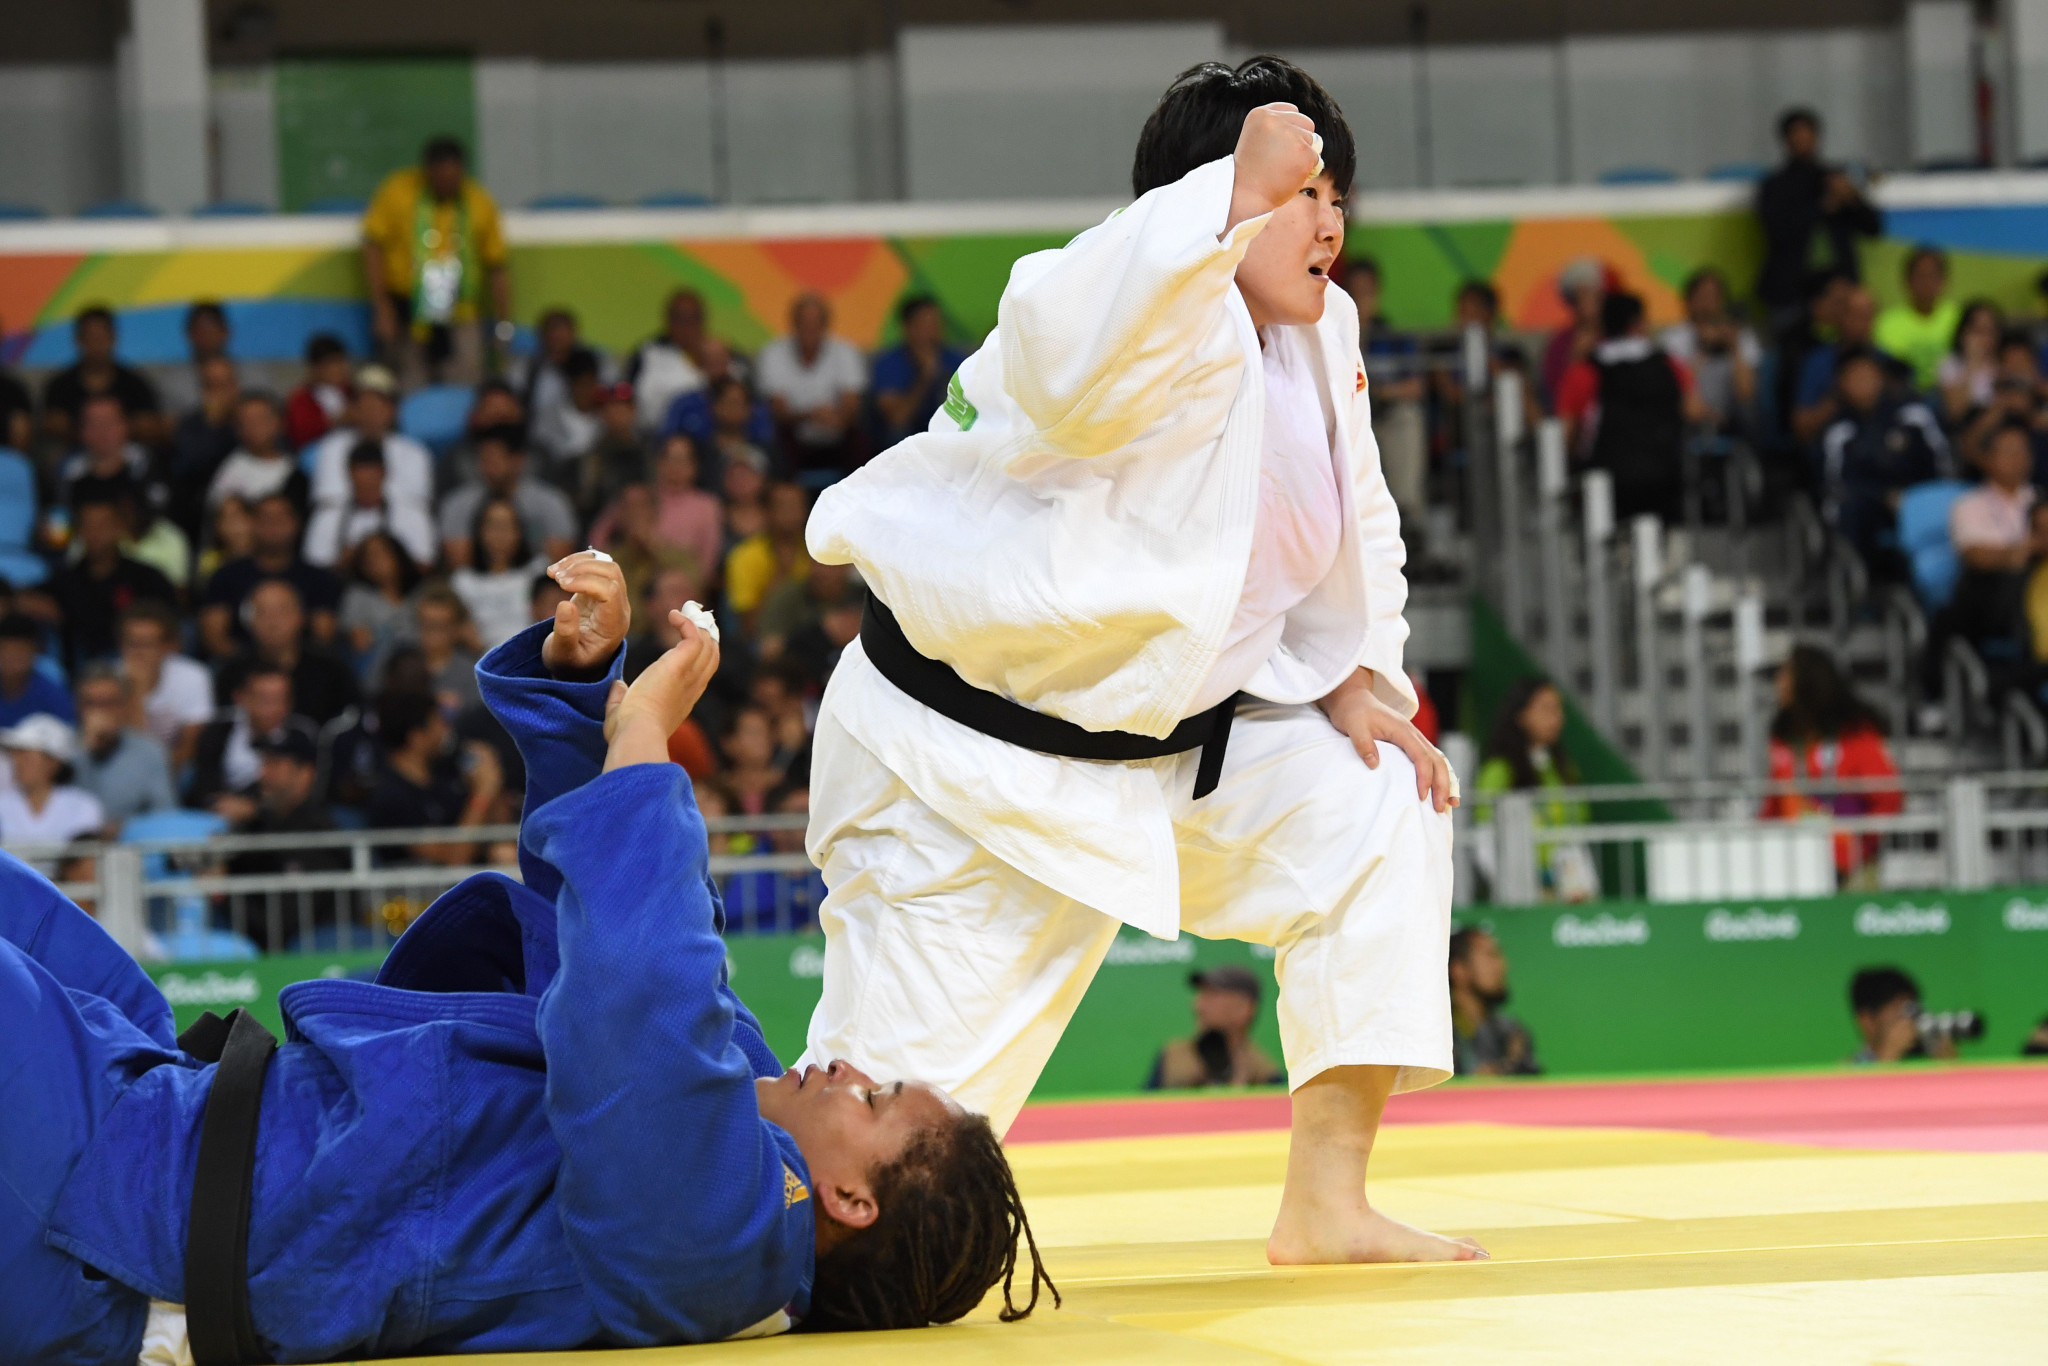 The news is seen as a boost to Chinese judo ©Getty Images